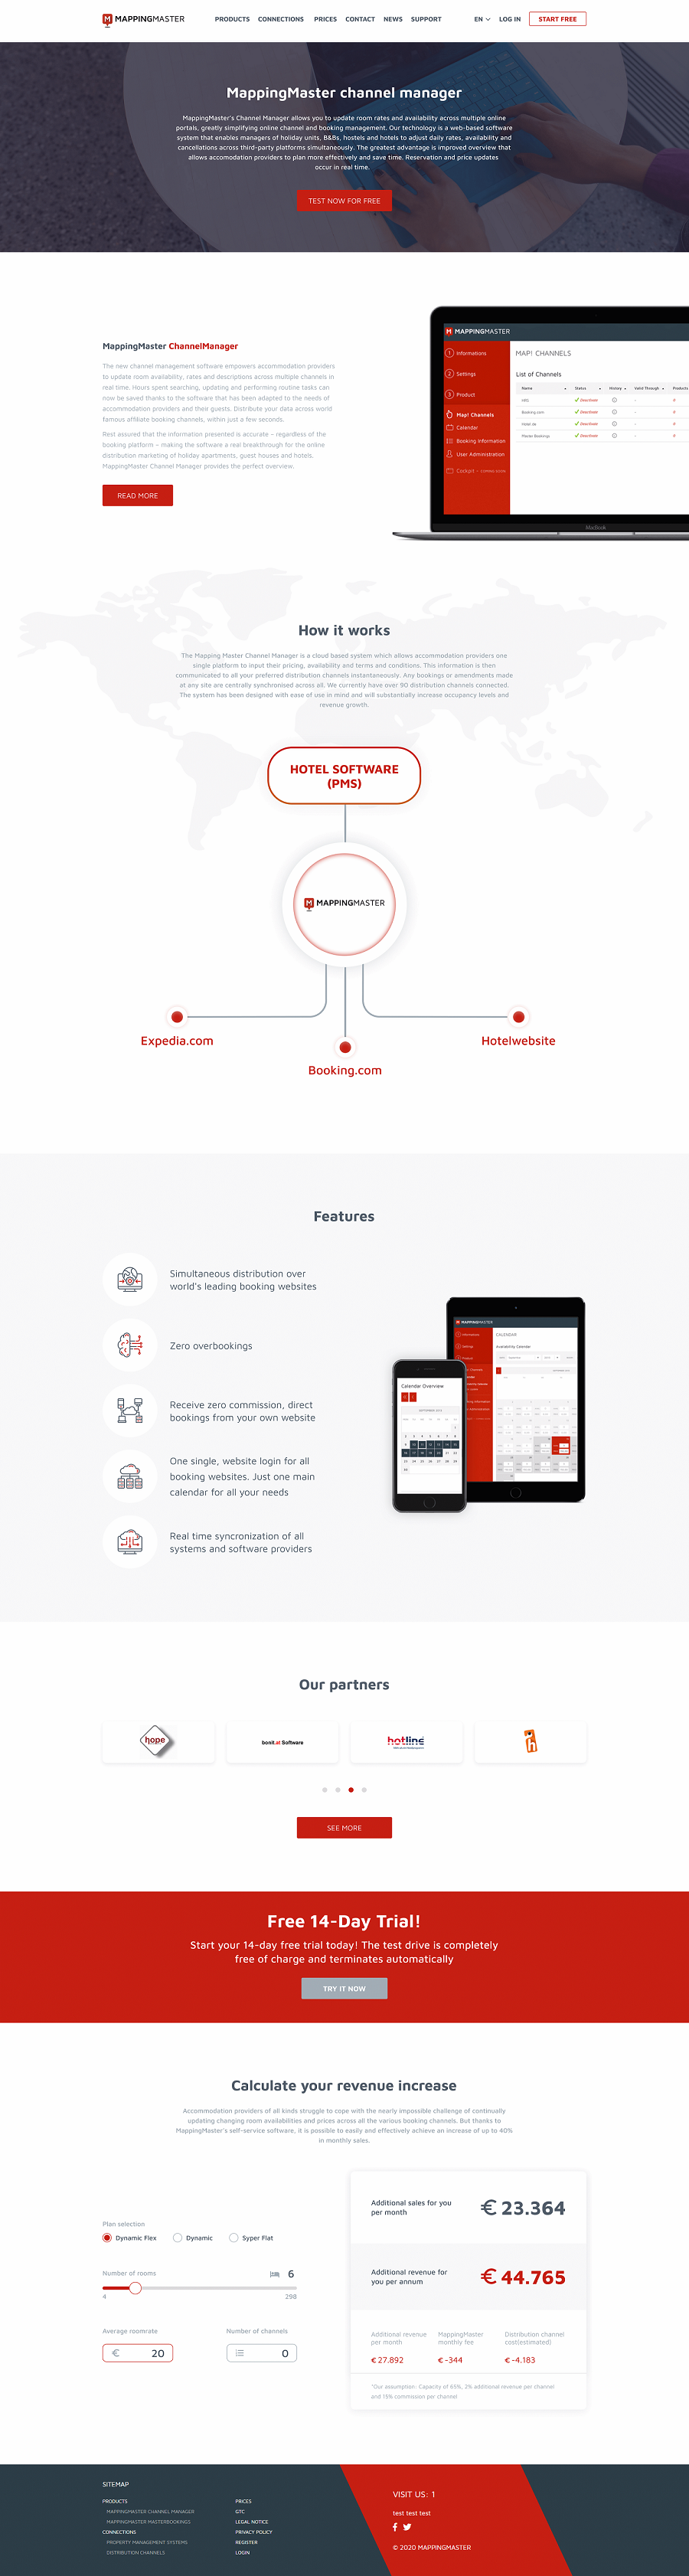 channel-manager-page-new design